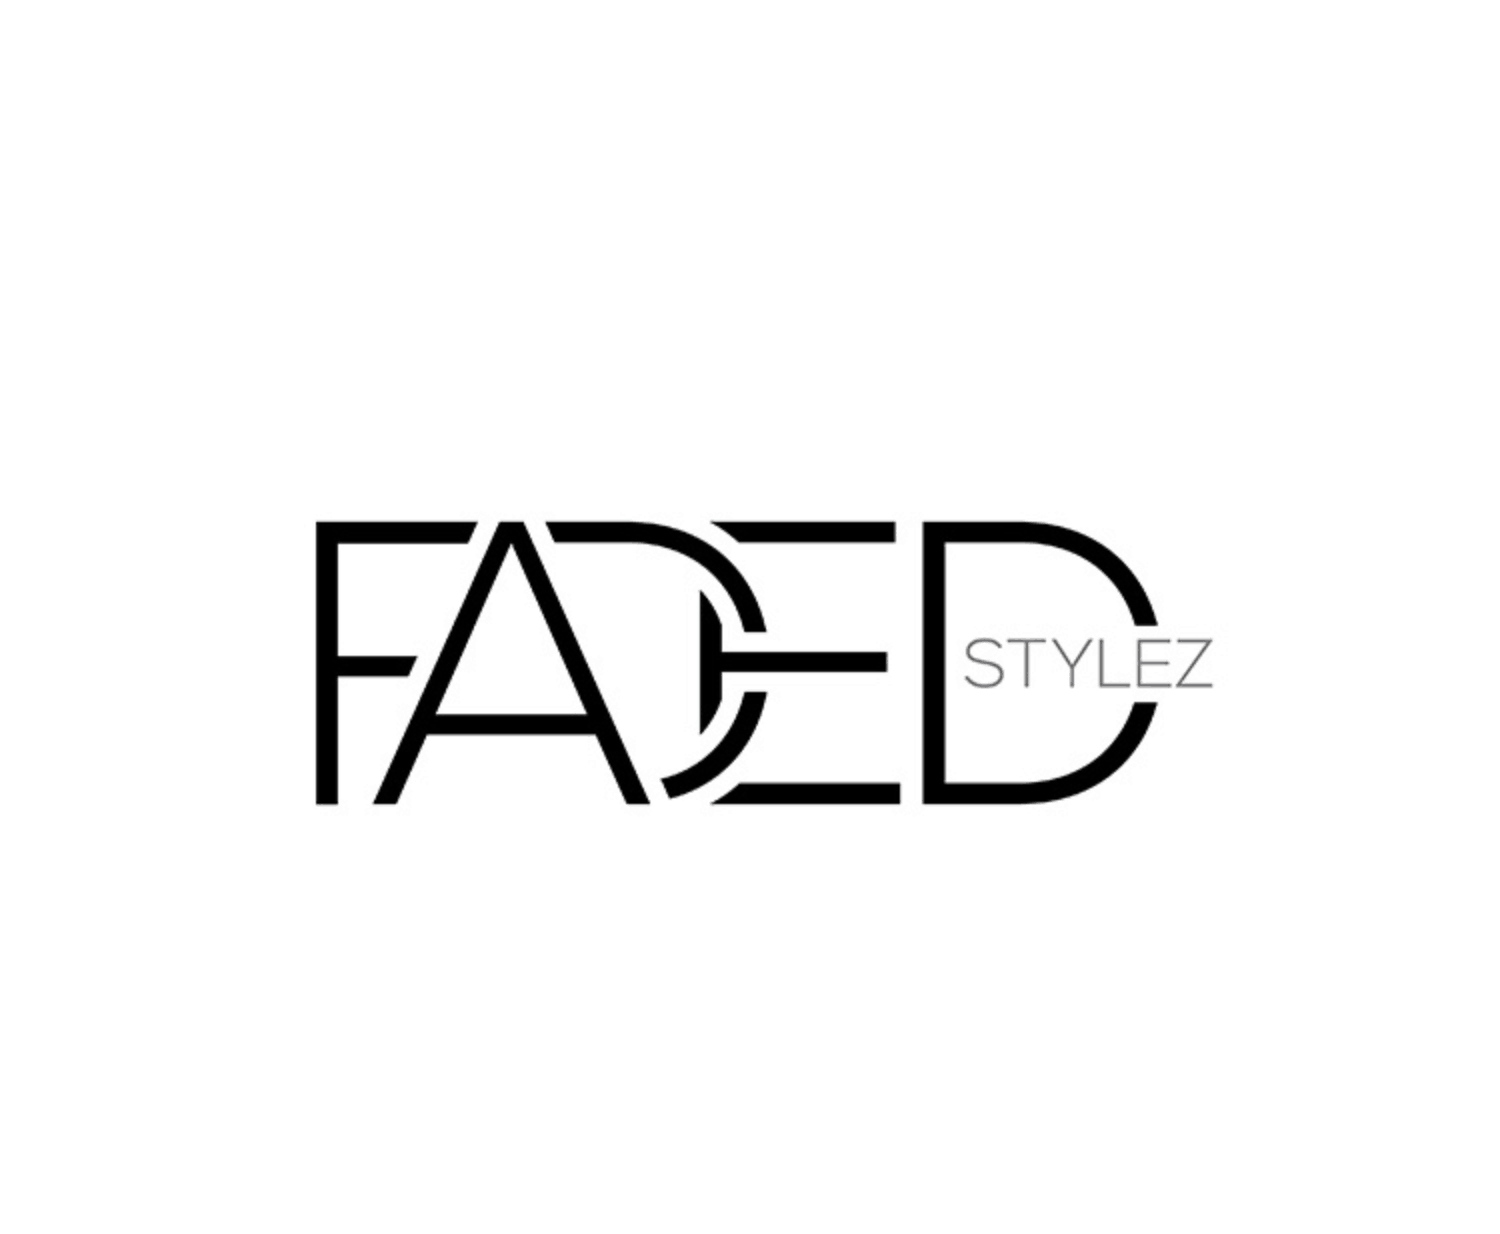 Logo by Tailored Logo - Faded Stylez